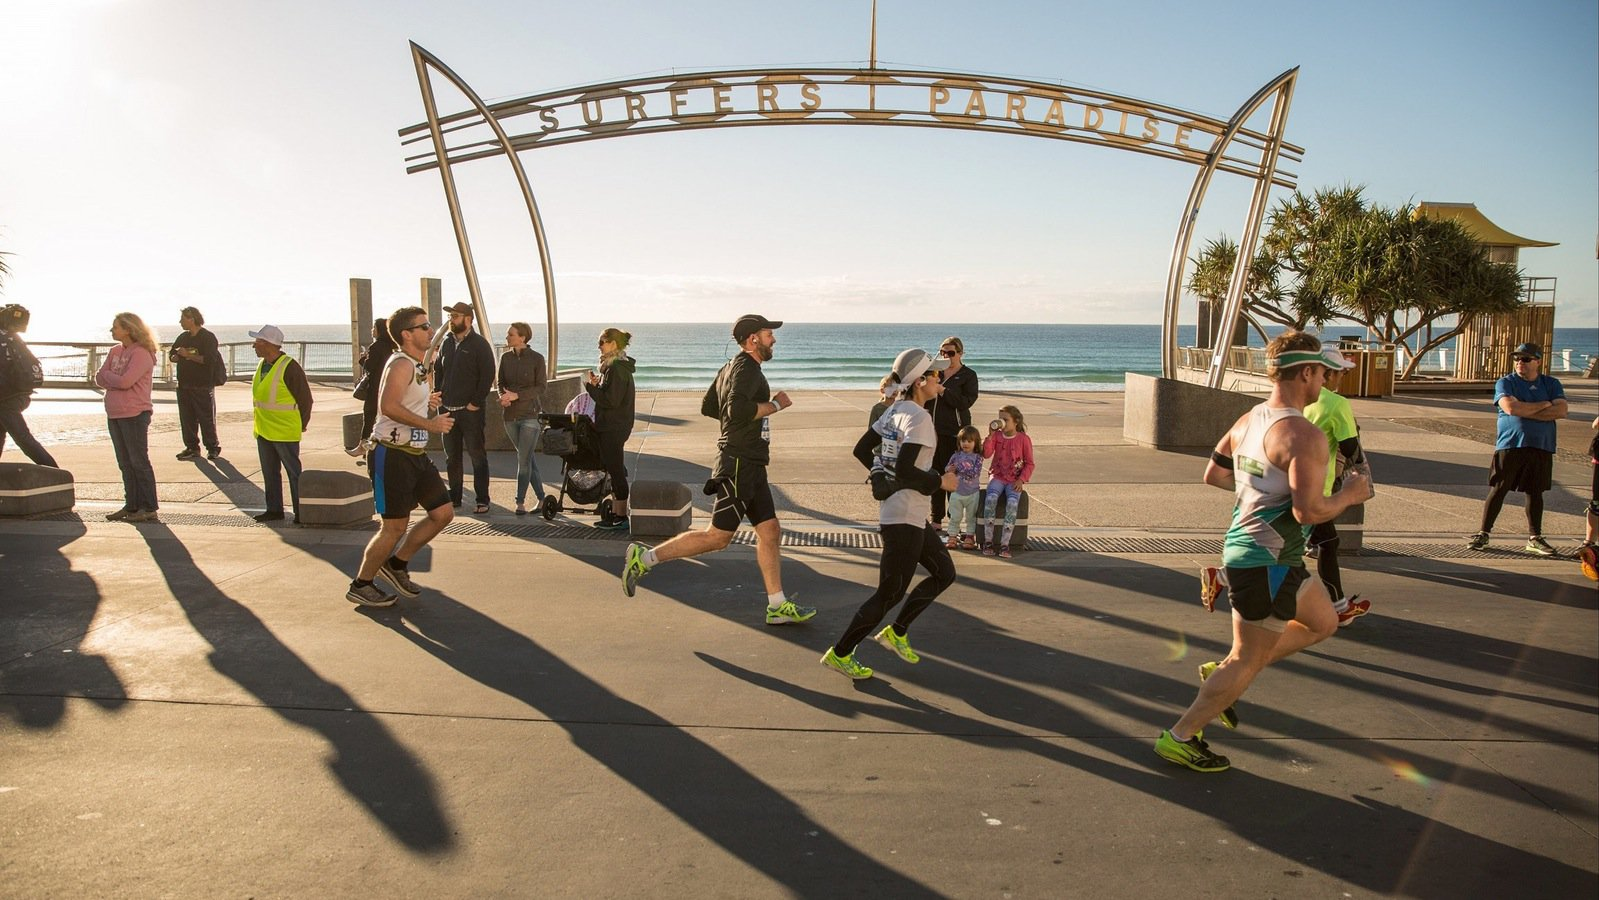 Runners passing Surfers Paradise